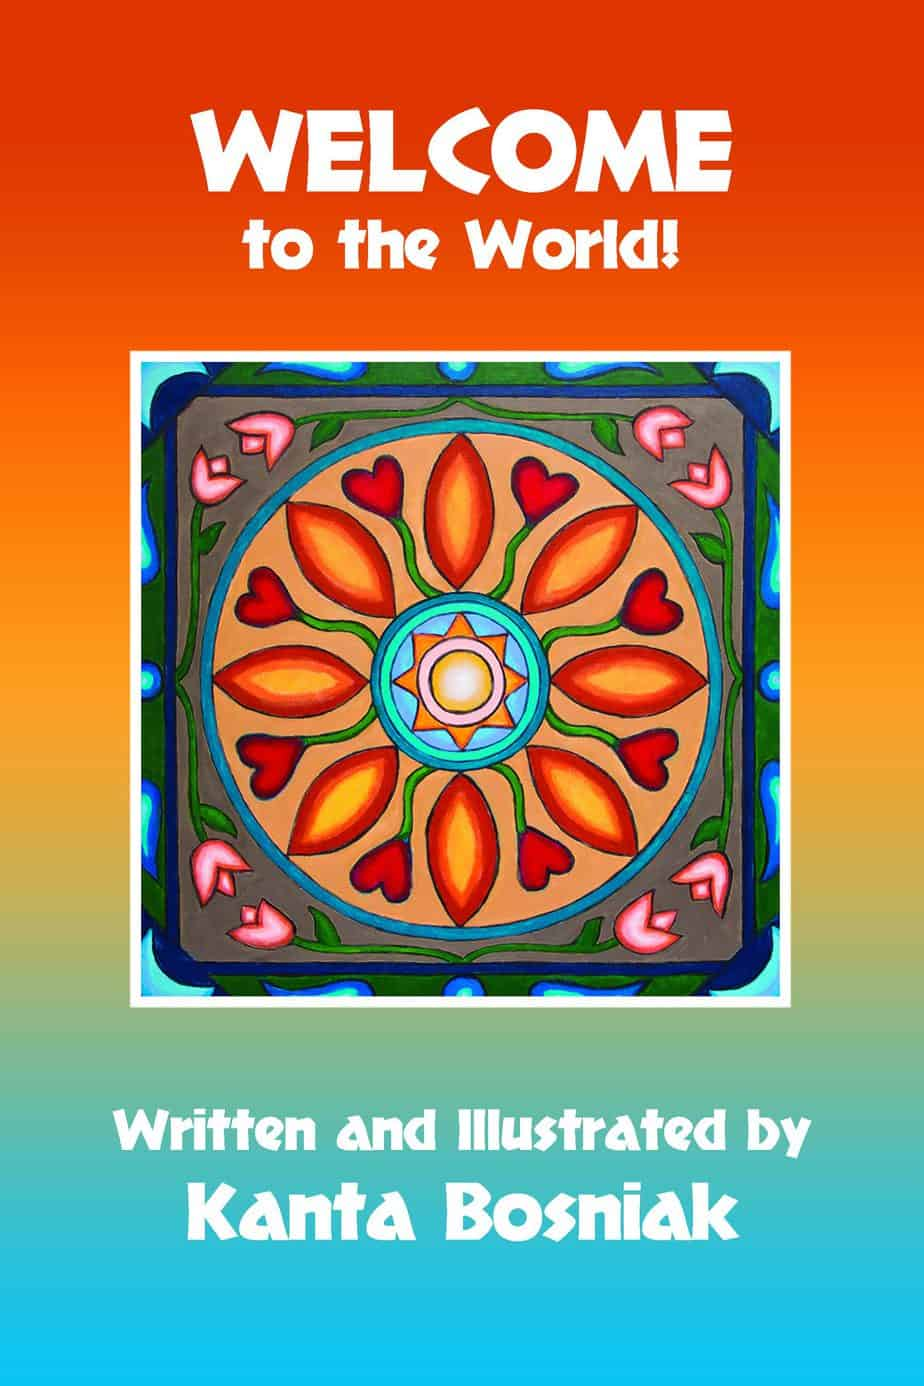 BOOK REVIEW – Welcome to the World!